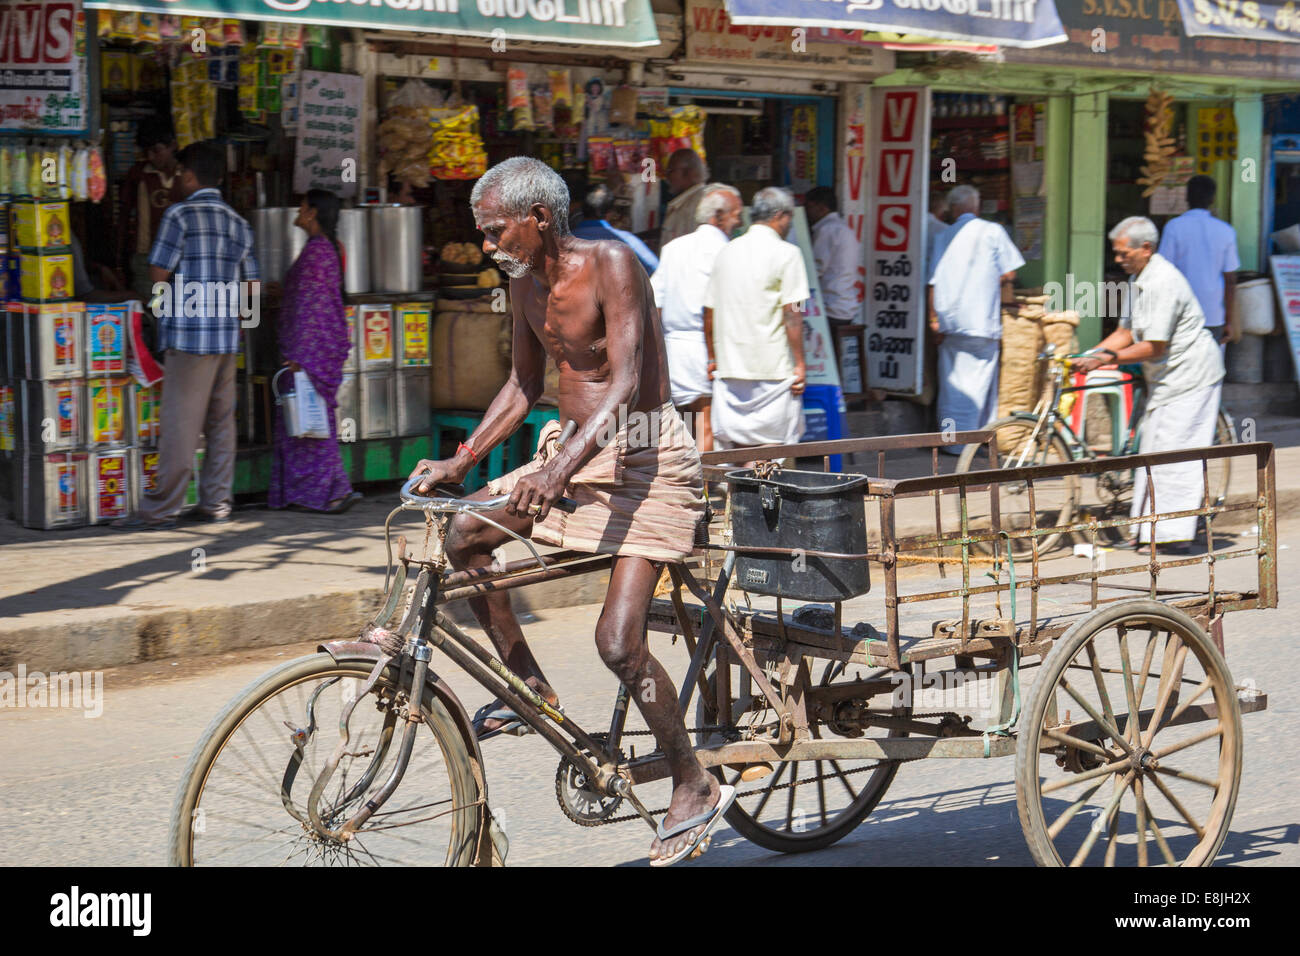 OVERWORKED RICKSHAW DRIVER ON HIS WAY TO ANOTHER VERY HEAVY LOAD INDIA - Stock Image